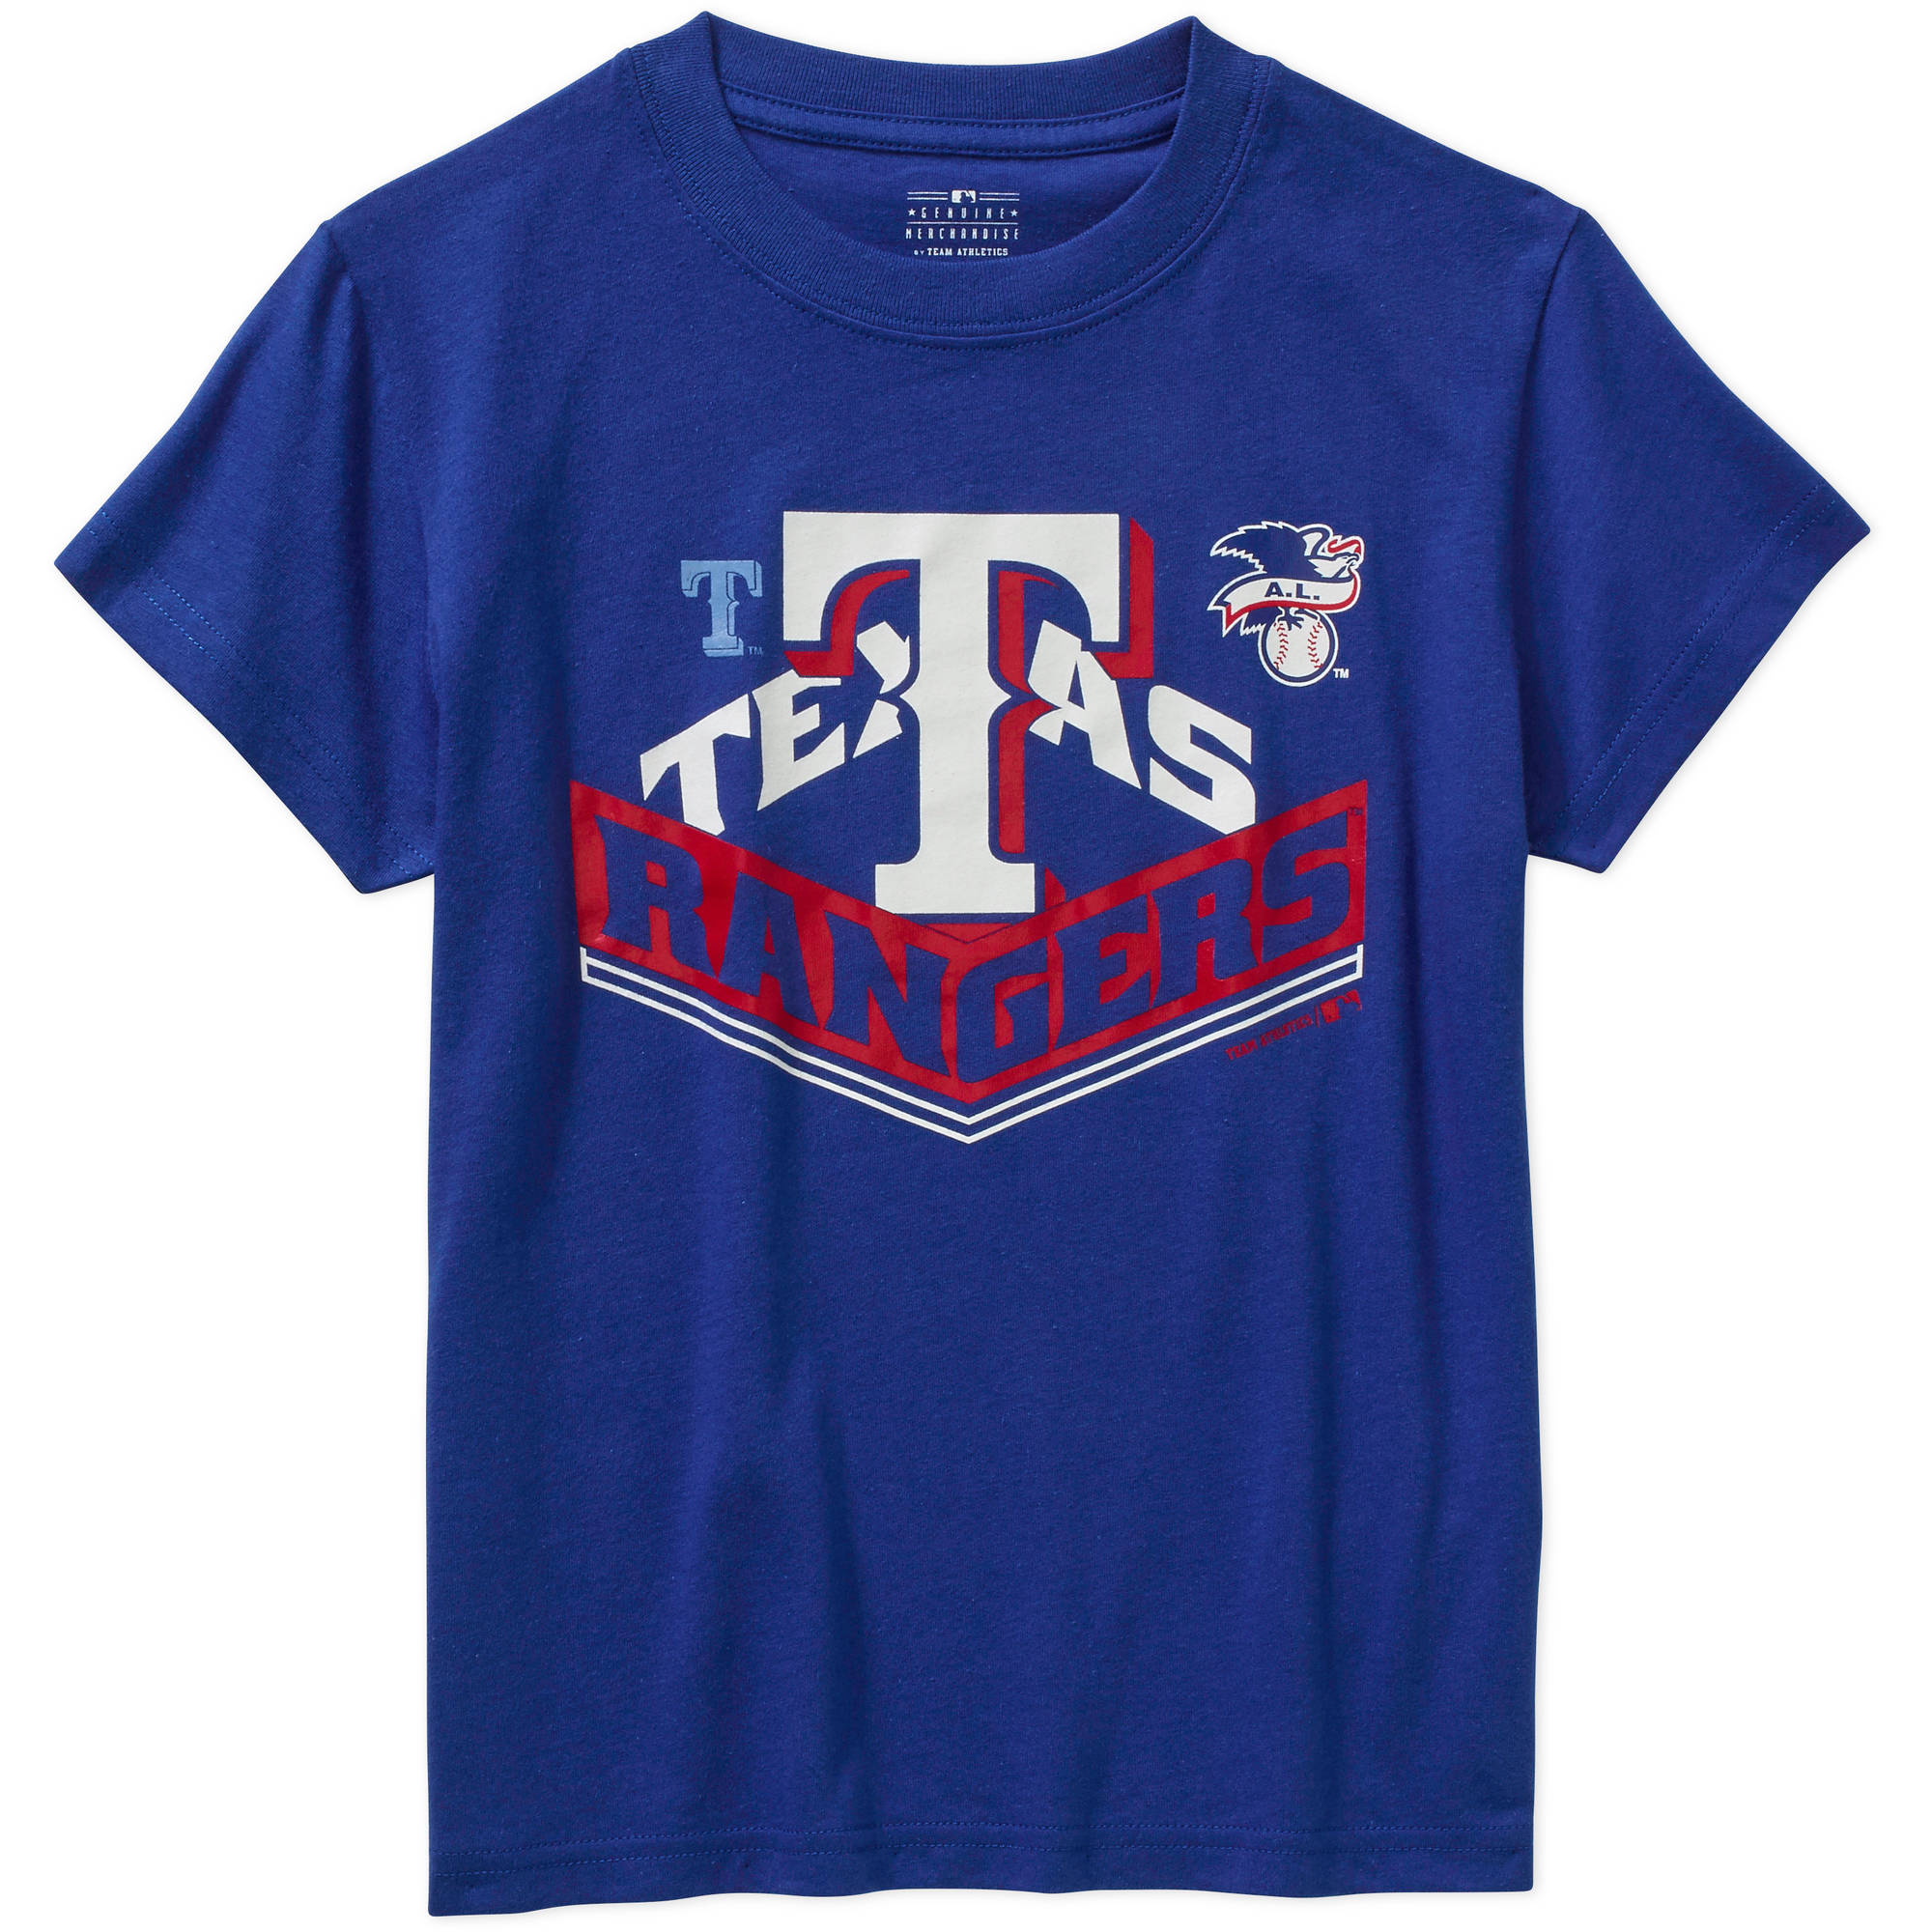 MLB Boys' Texas Rangers Alternate Team Short Sleeve Tee